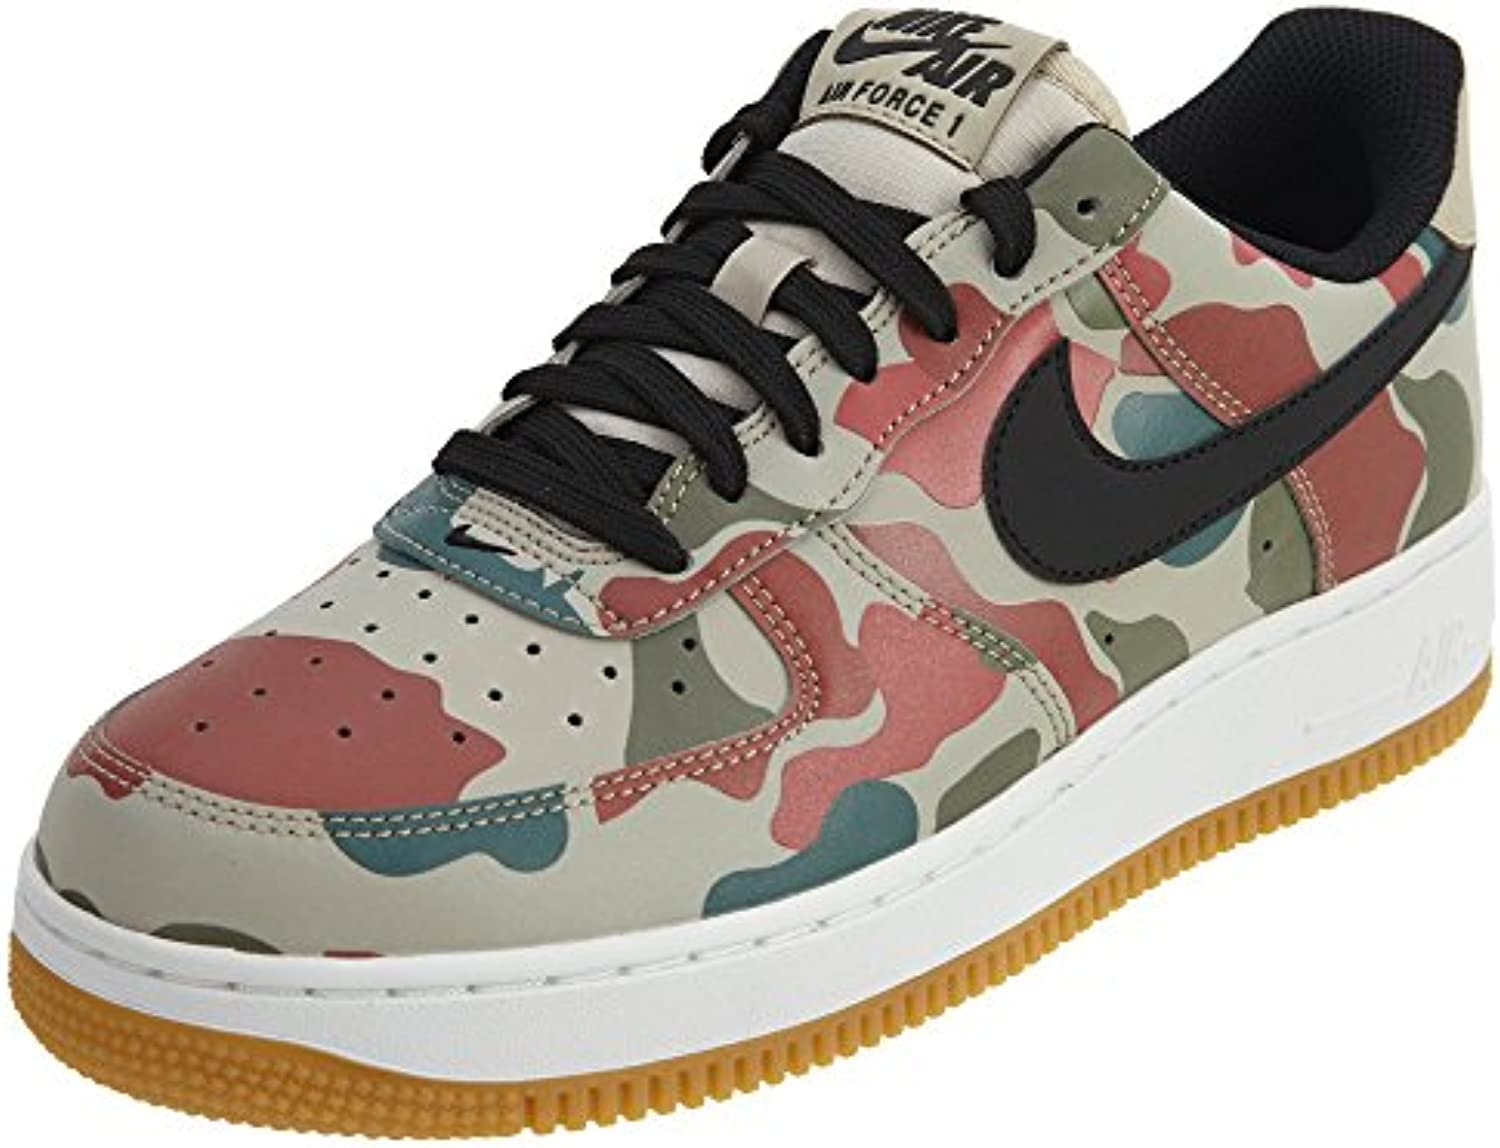 Nike Air Force 1 '07 Lv8 Mens Style : 718152 201 Size : 12 D(M) US